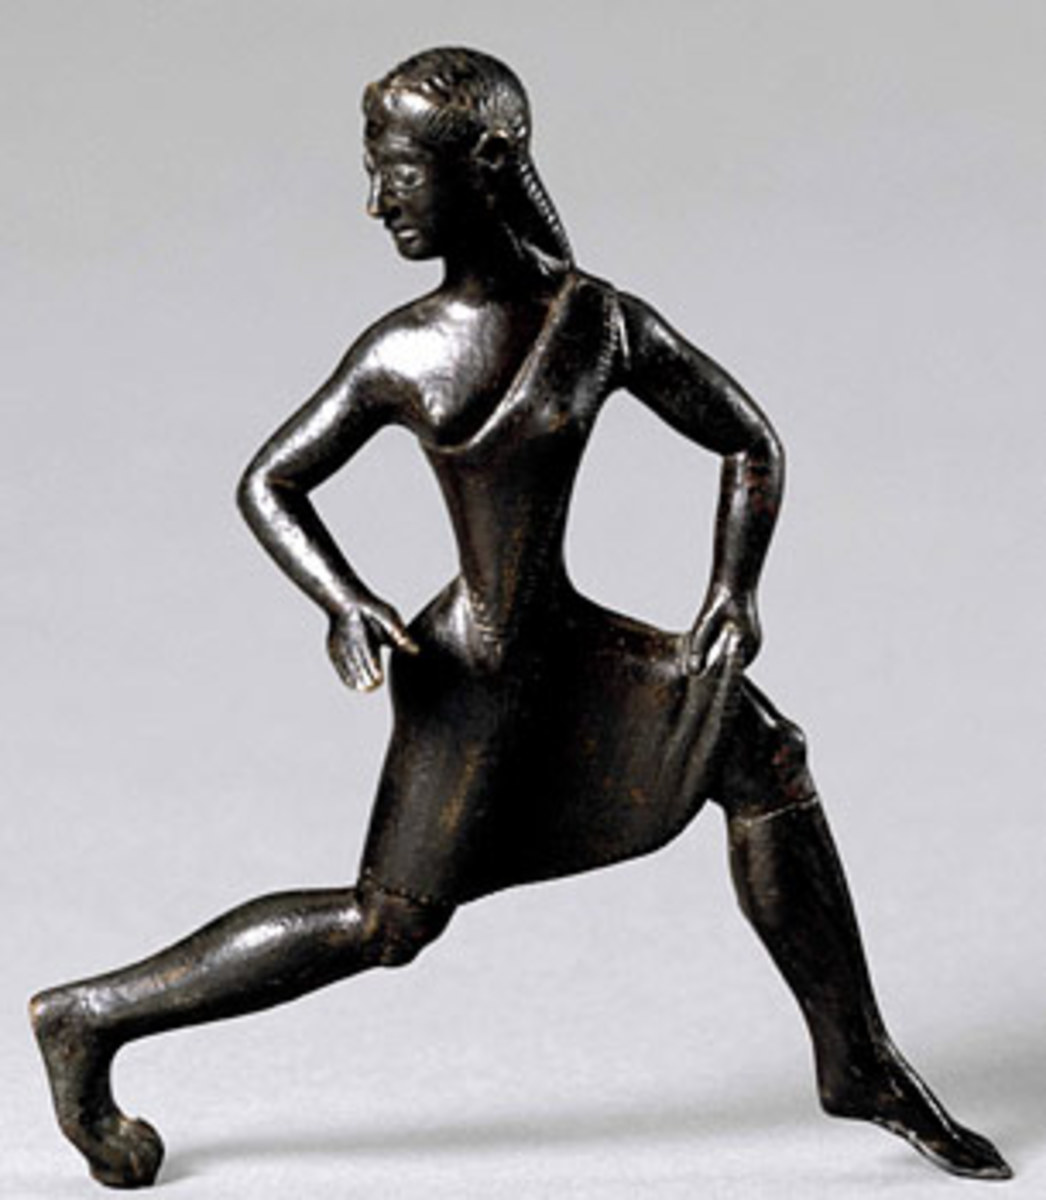 Bronze statuette of a girl wearing a short tunic. The single-shouldered garment, baring the right breast, was the characteristic dress of competitors in the Heraean Games.